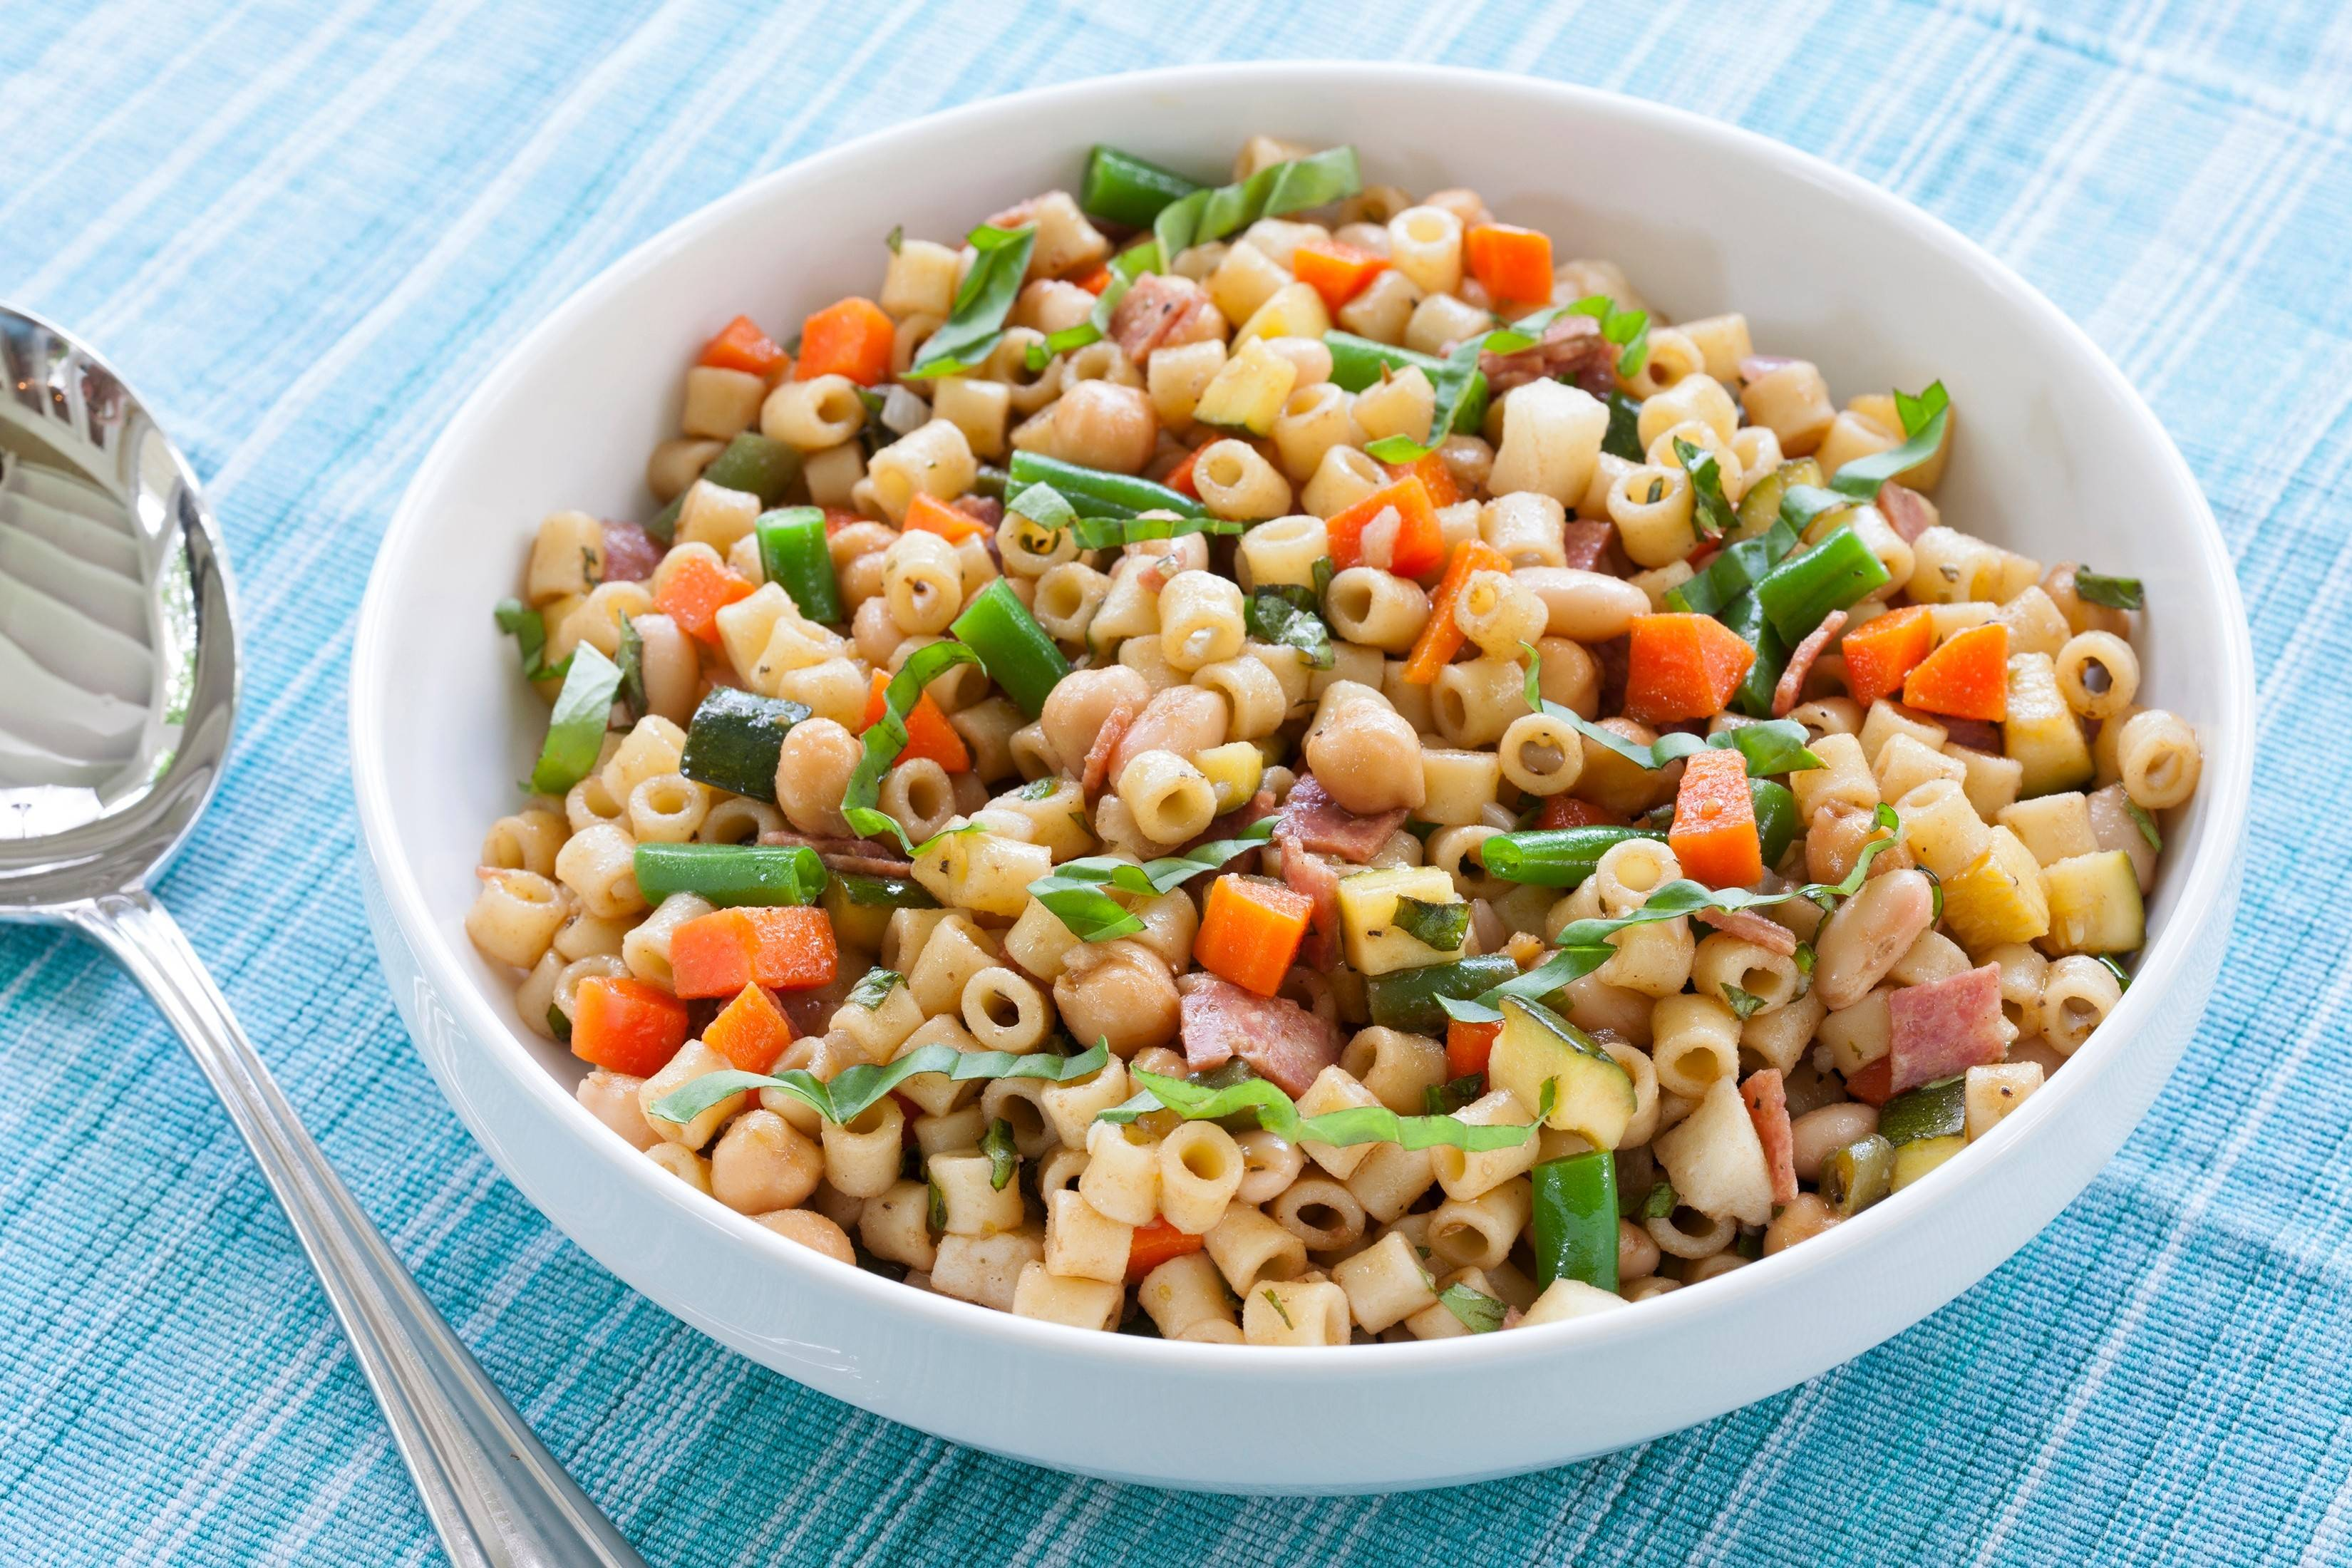 Minestrone morphs into pasta salads for a light, summer supper.